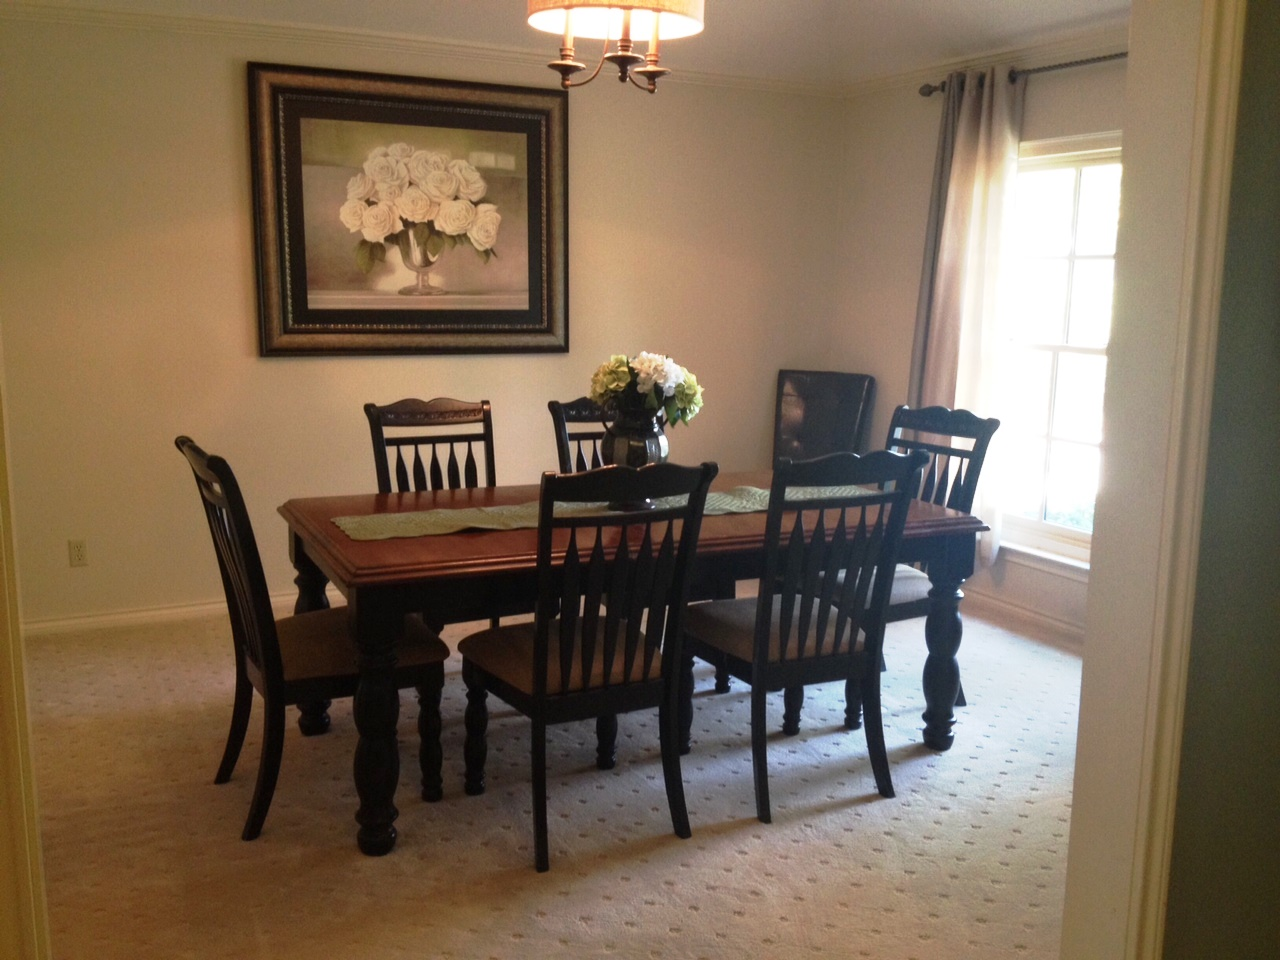 I Decided I Wanted A Very Formal Dining Room, With A Modern And Classy  Color Scheme, And Seating For A Large Group. I Chose Cement Gray Paint From  The ...